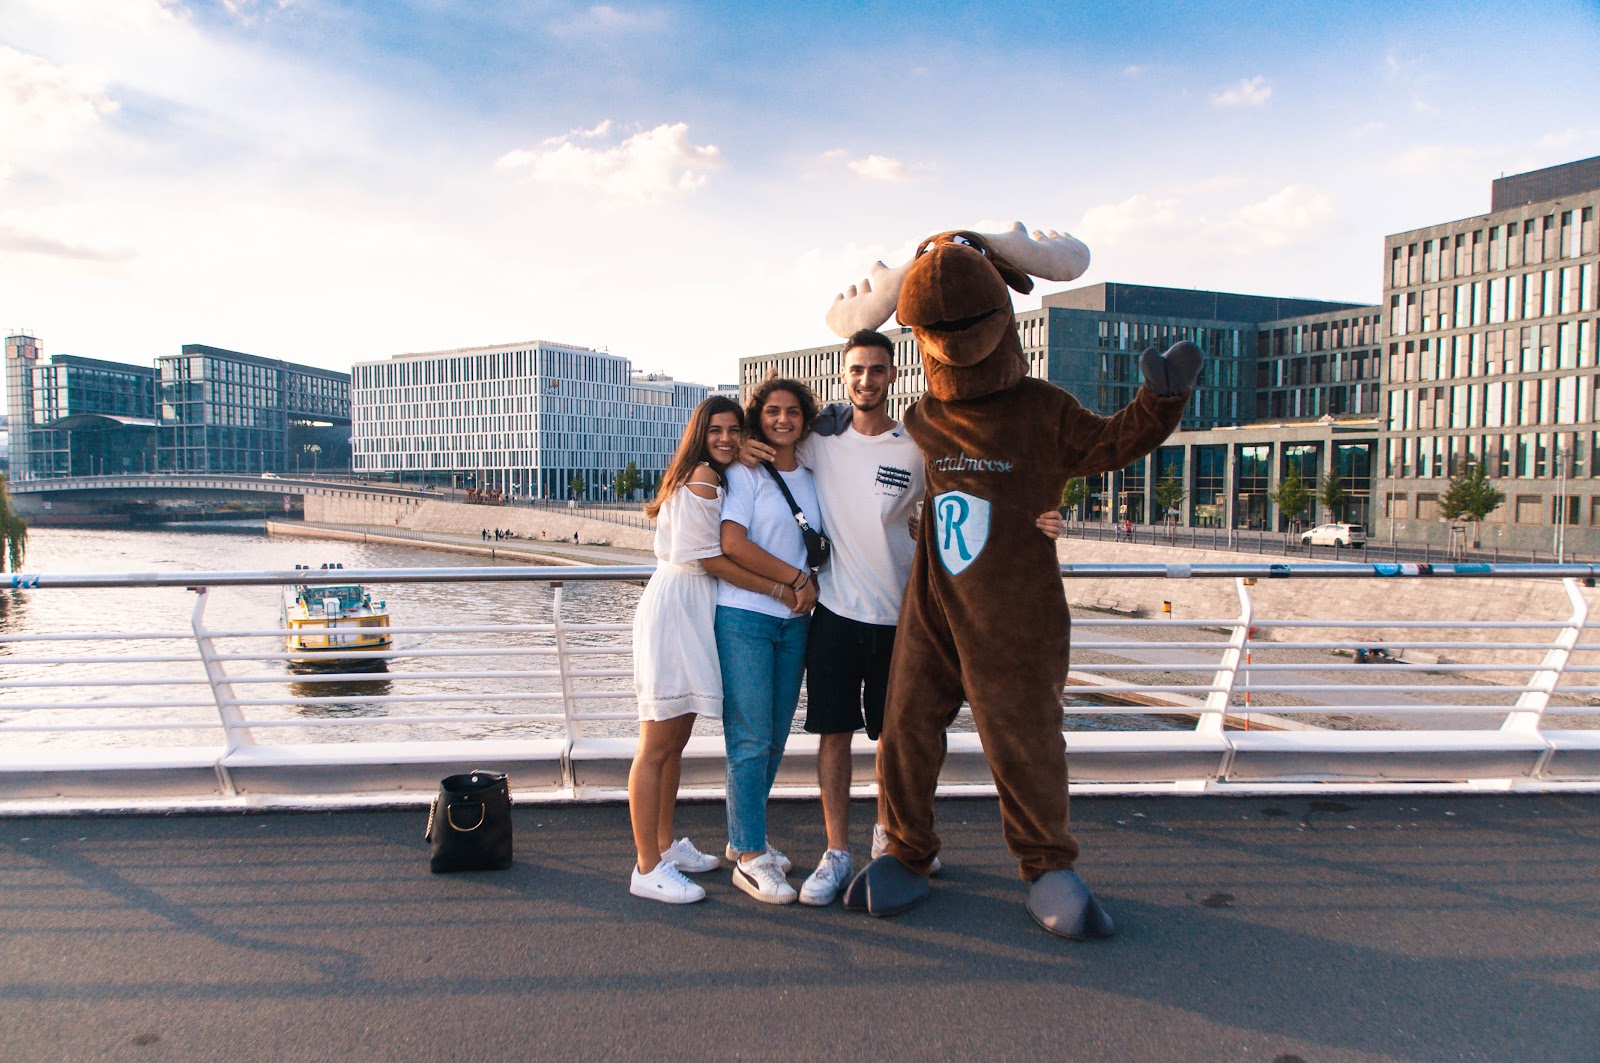 Rentalmoose Mascot posing with three tourists at Kronprinzenbruecke in downtown Berlin, Germany. Berlin Spree and modern office buildings in the background.